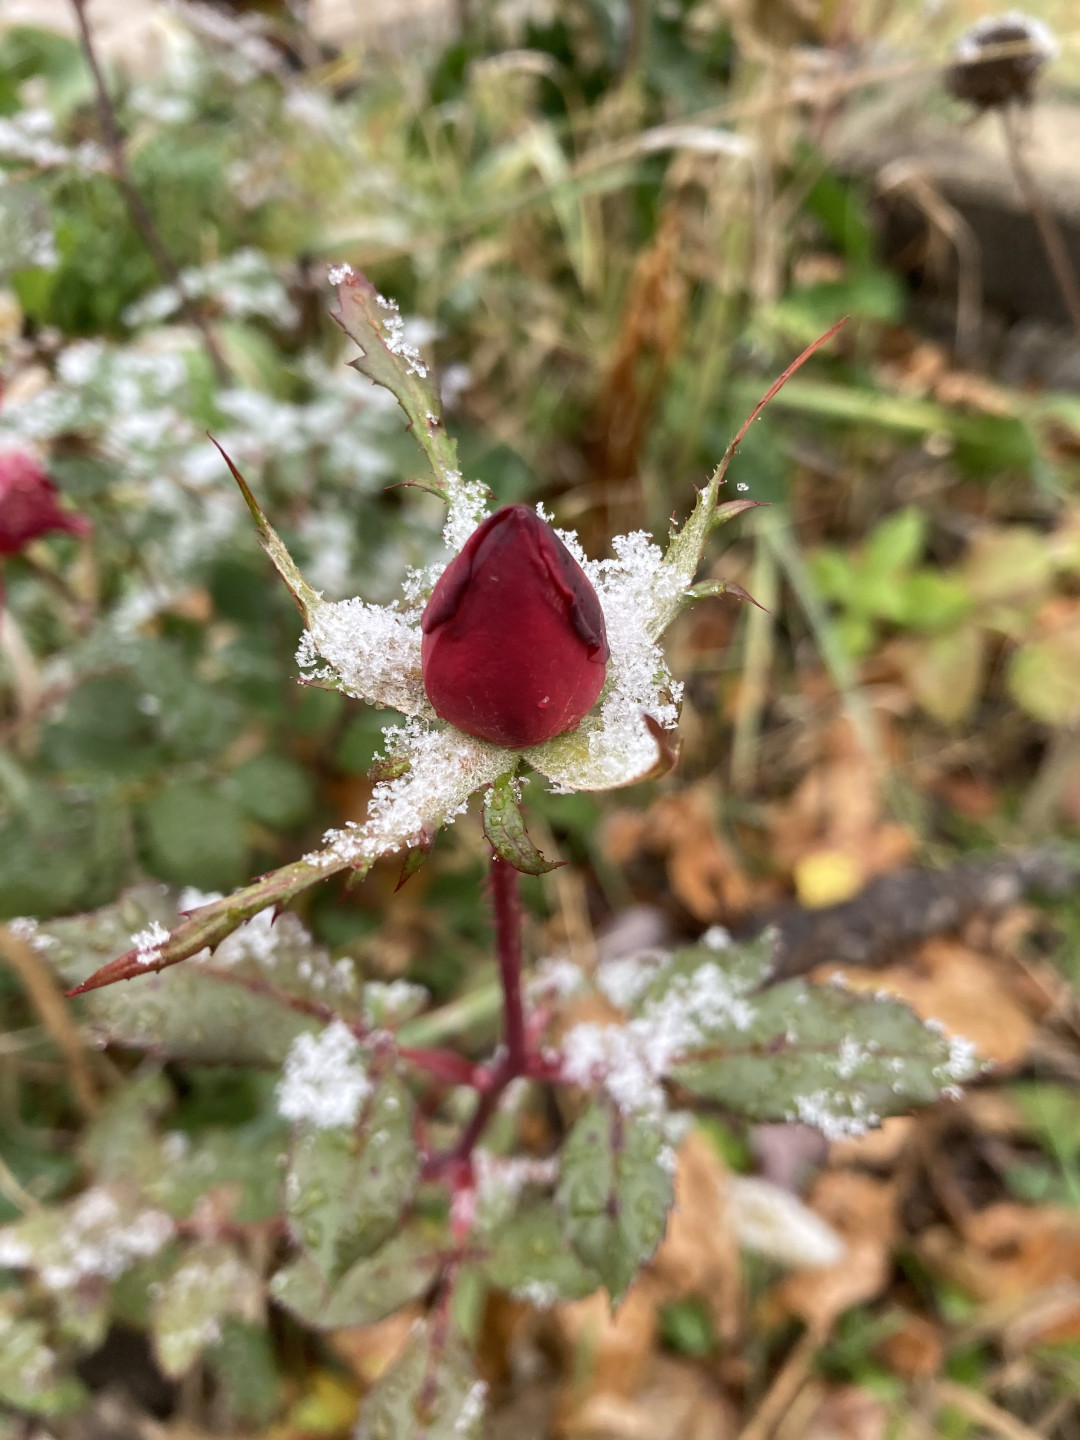 rose bud covered in snow